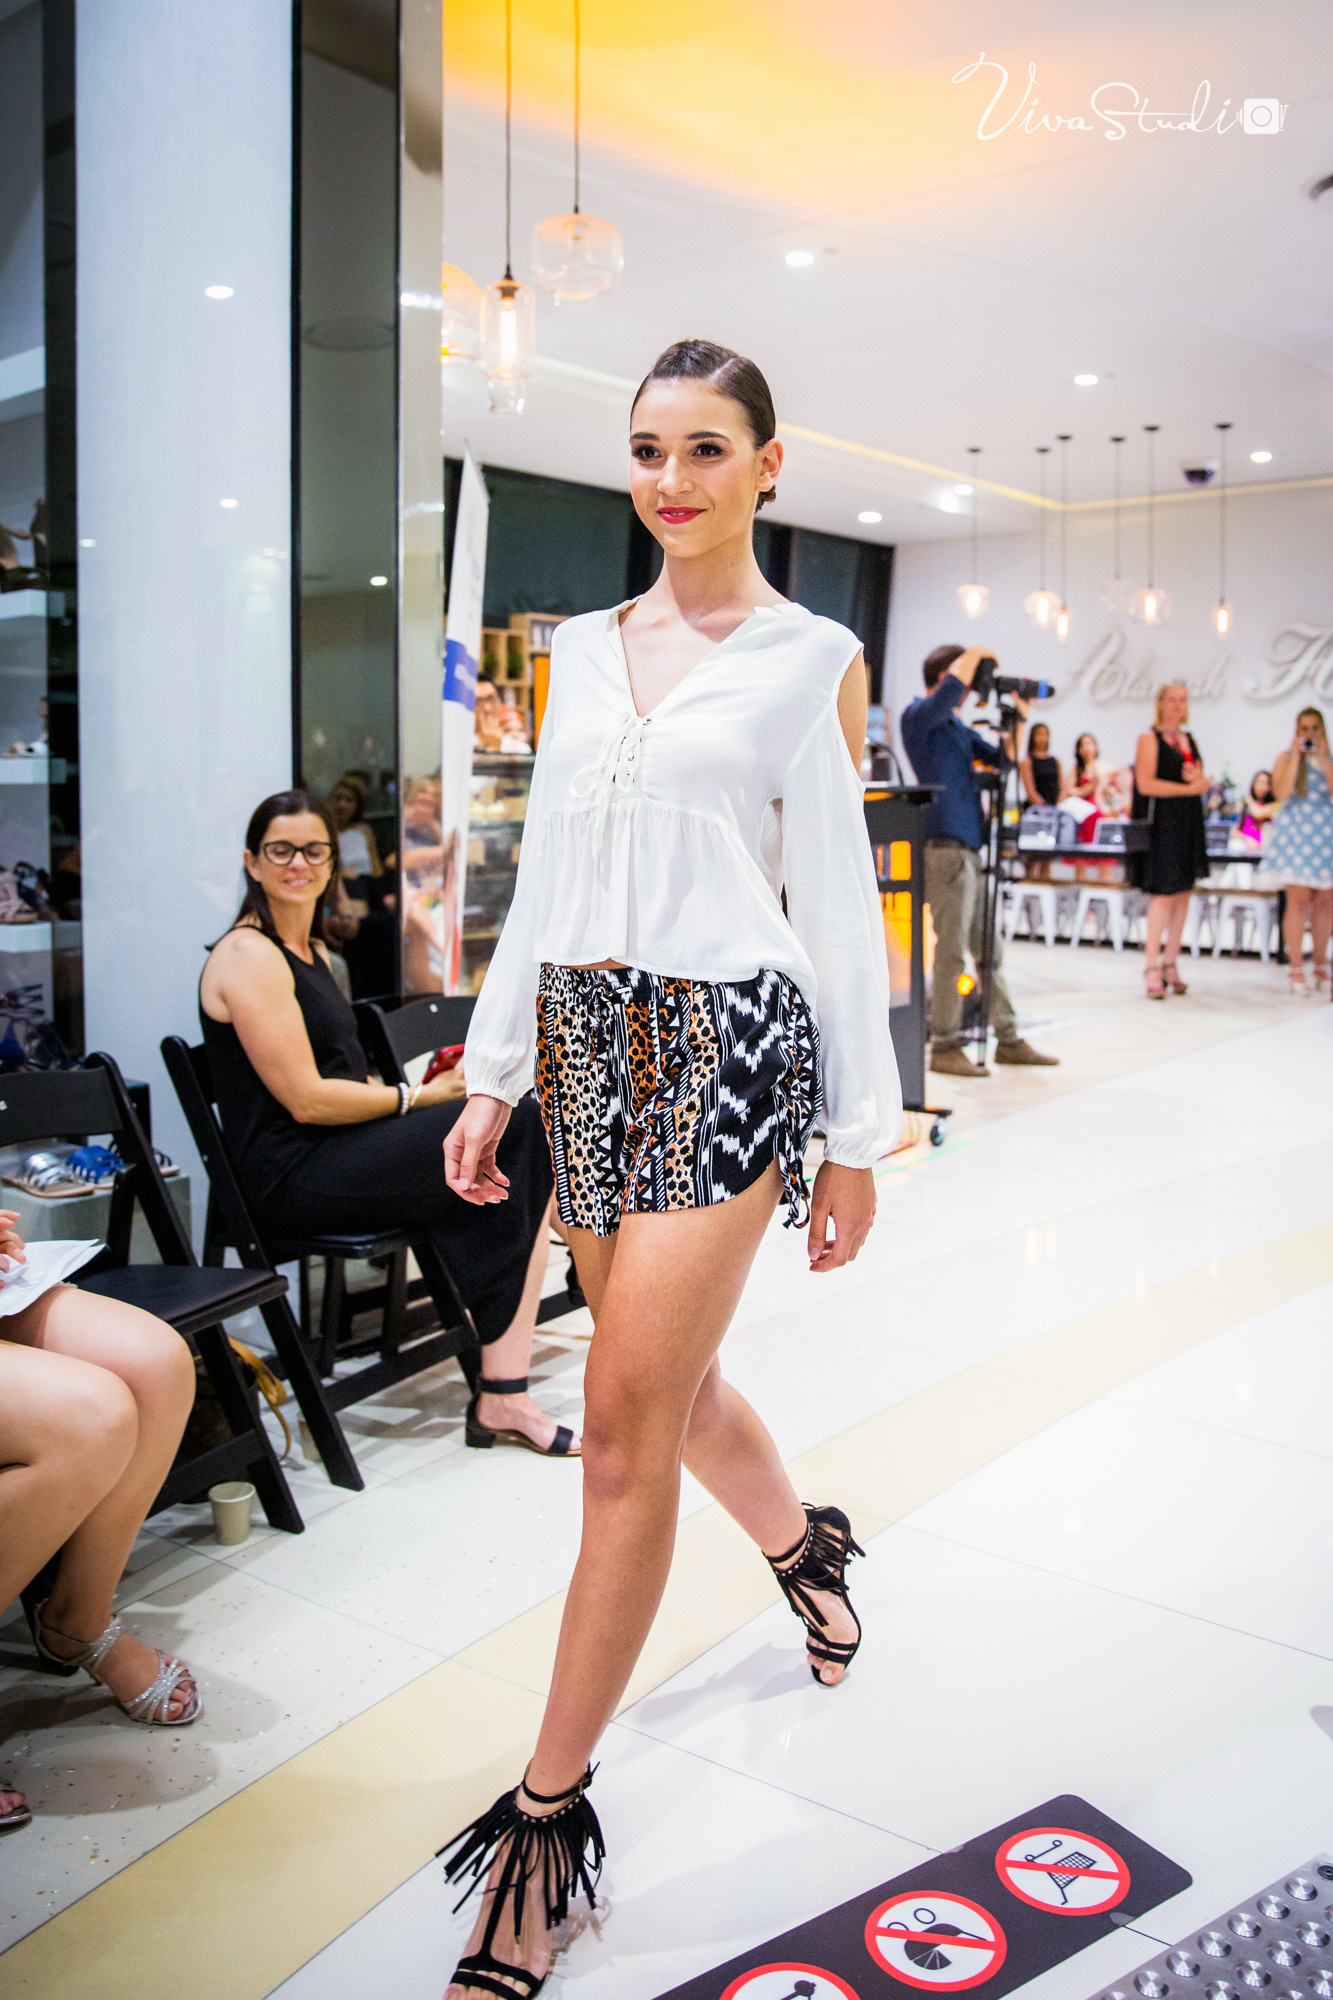 VivaStudio_Design_Photograpphy_Brisbane_Event_Fashionable_20151105_0148